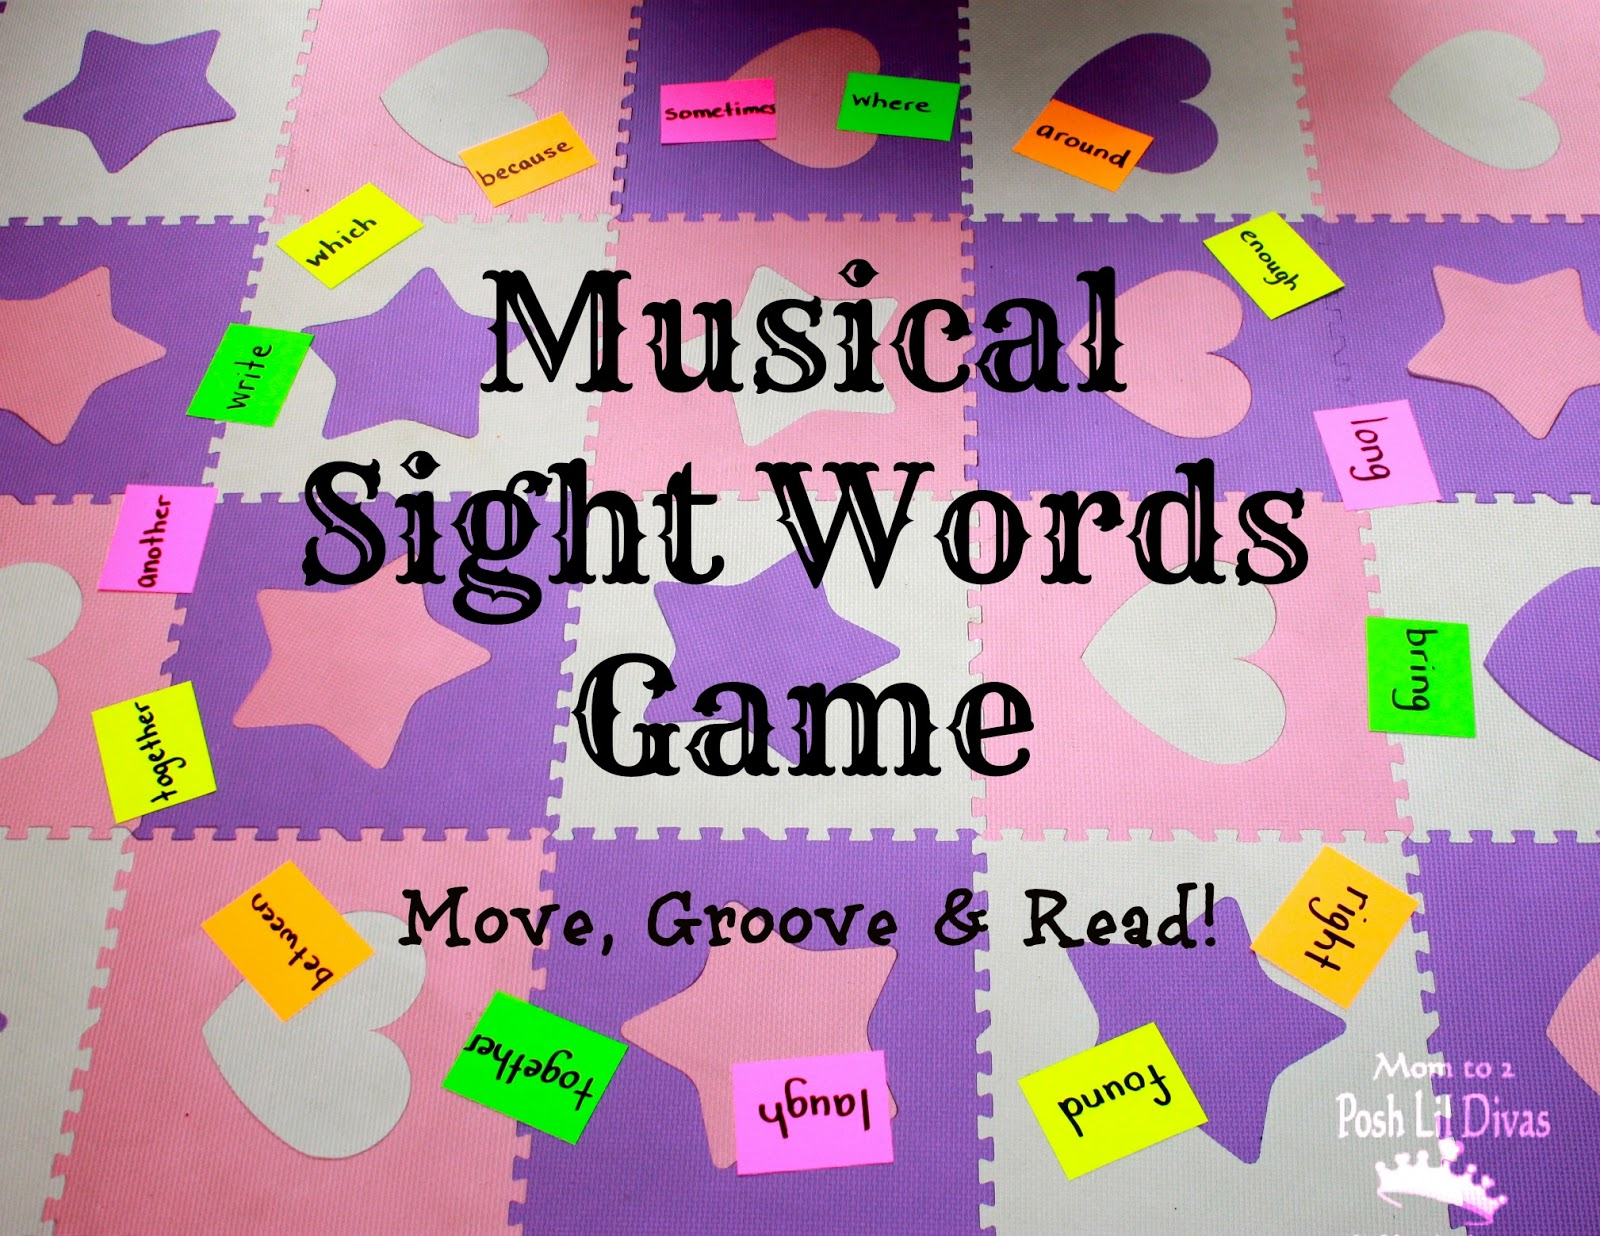 worksheet Sight Word Game mom to 2 posh lil divas musical sight words game move groove and read